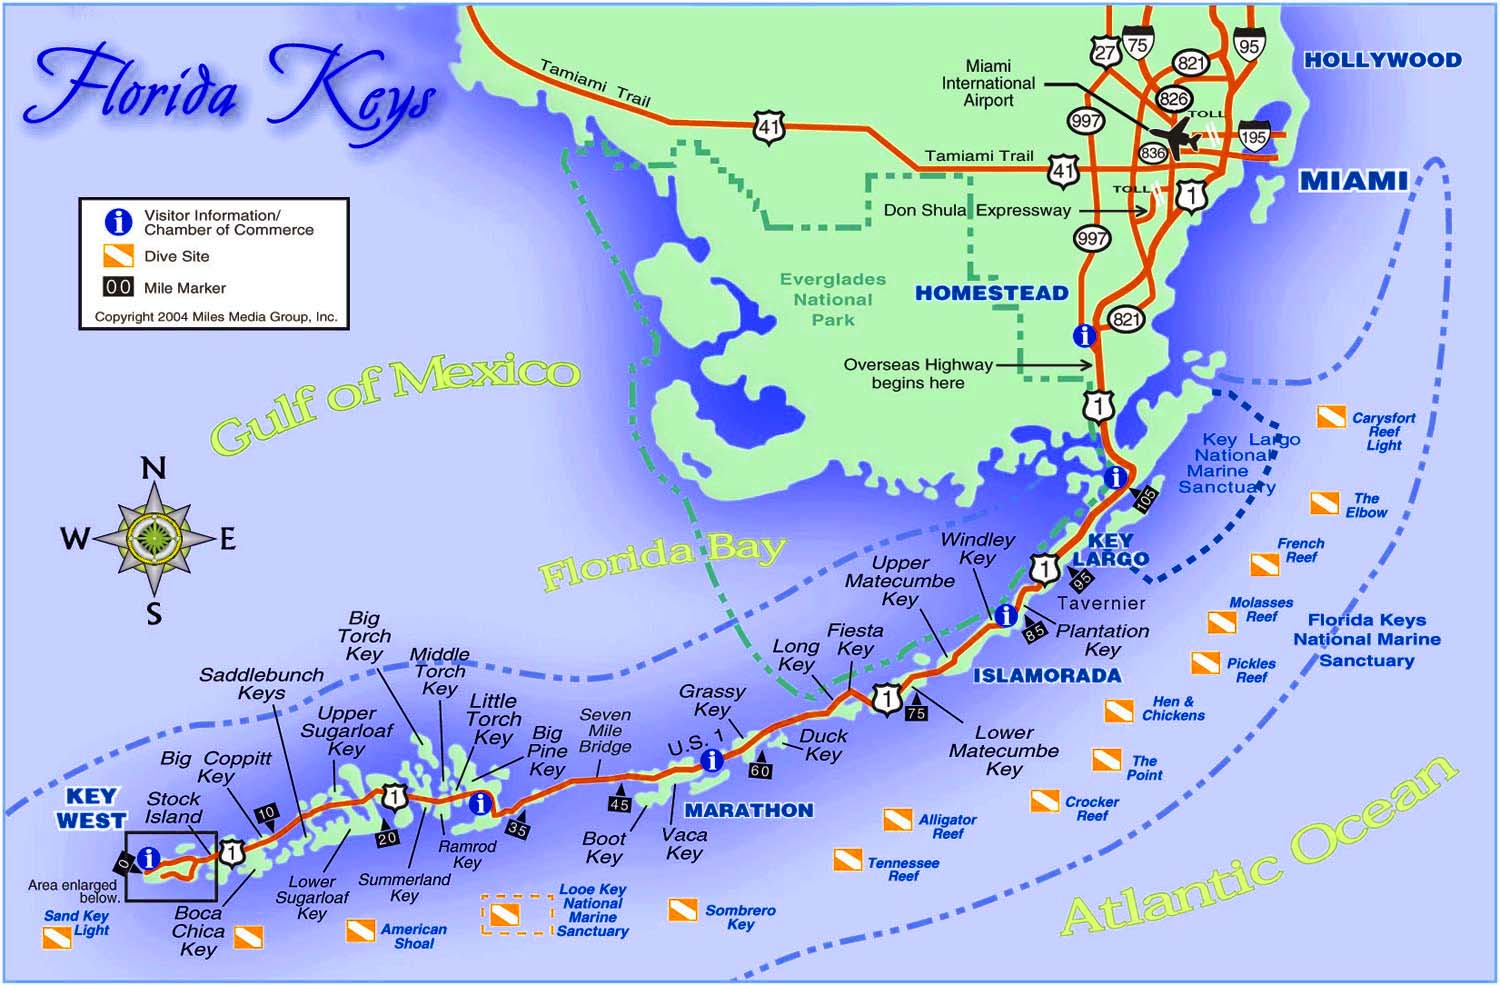 Best Florida Keys Beaches Map